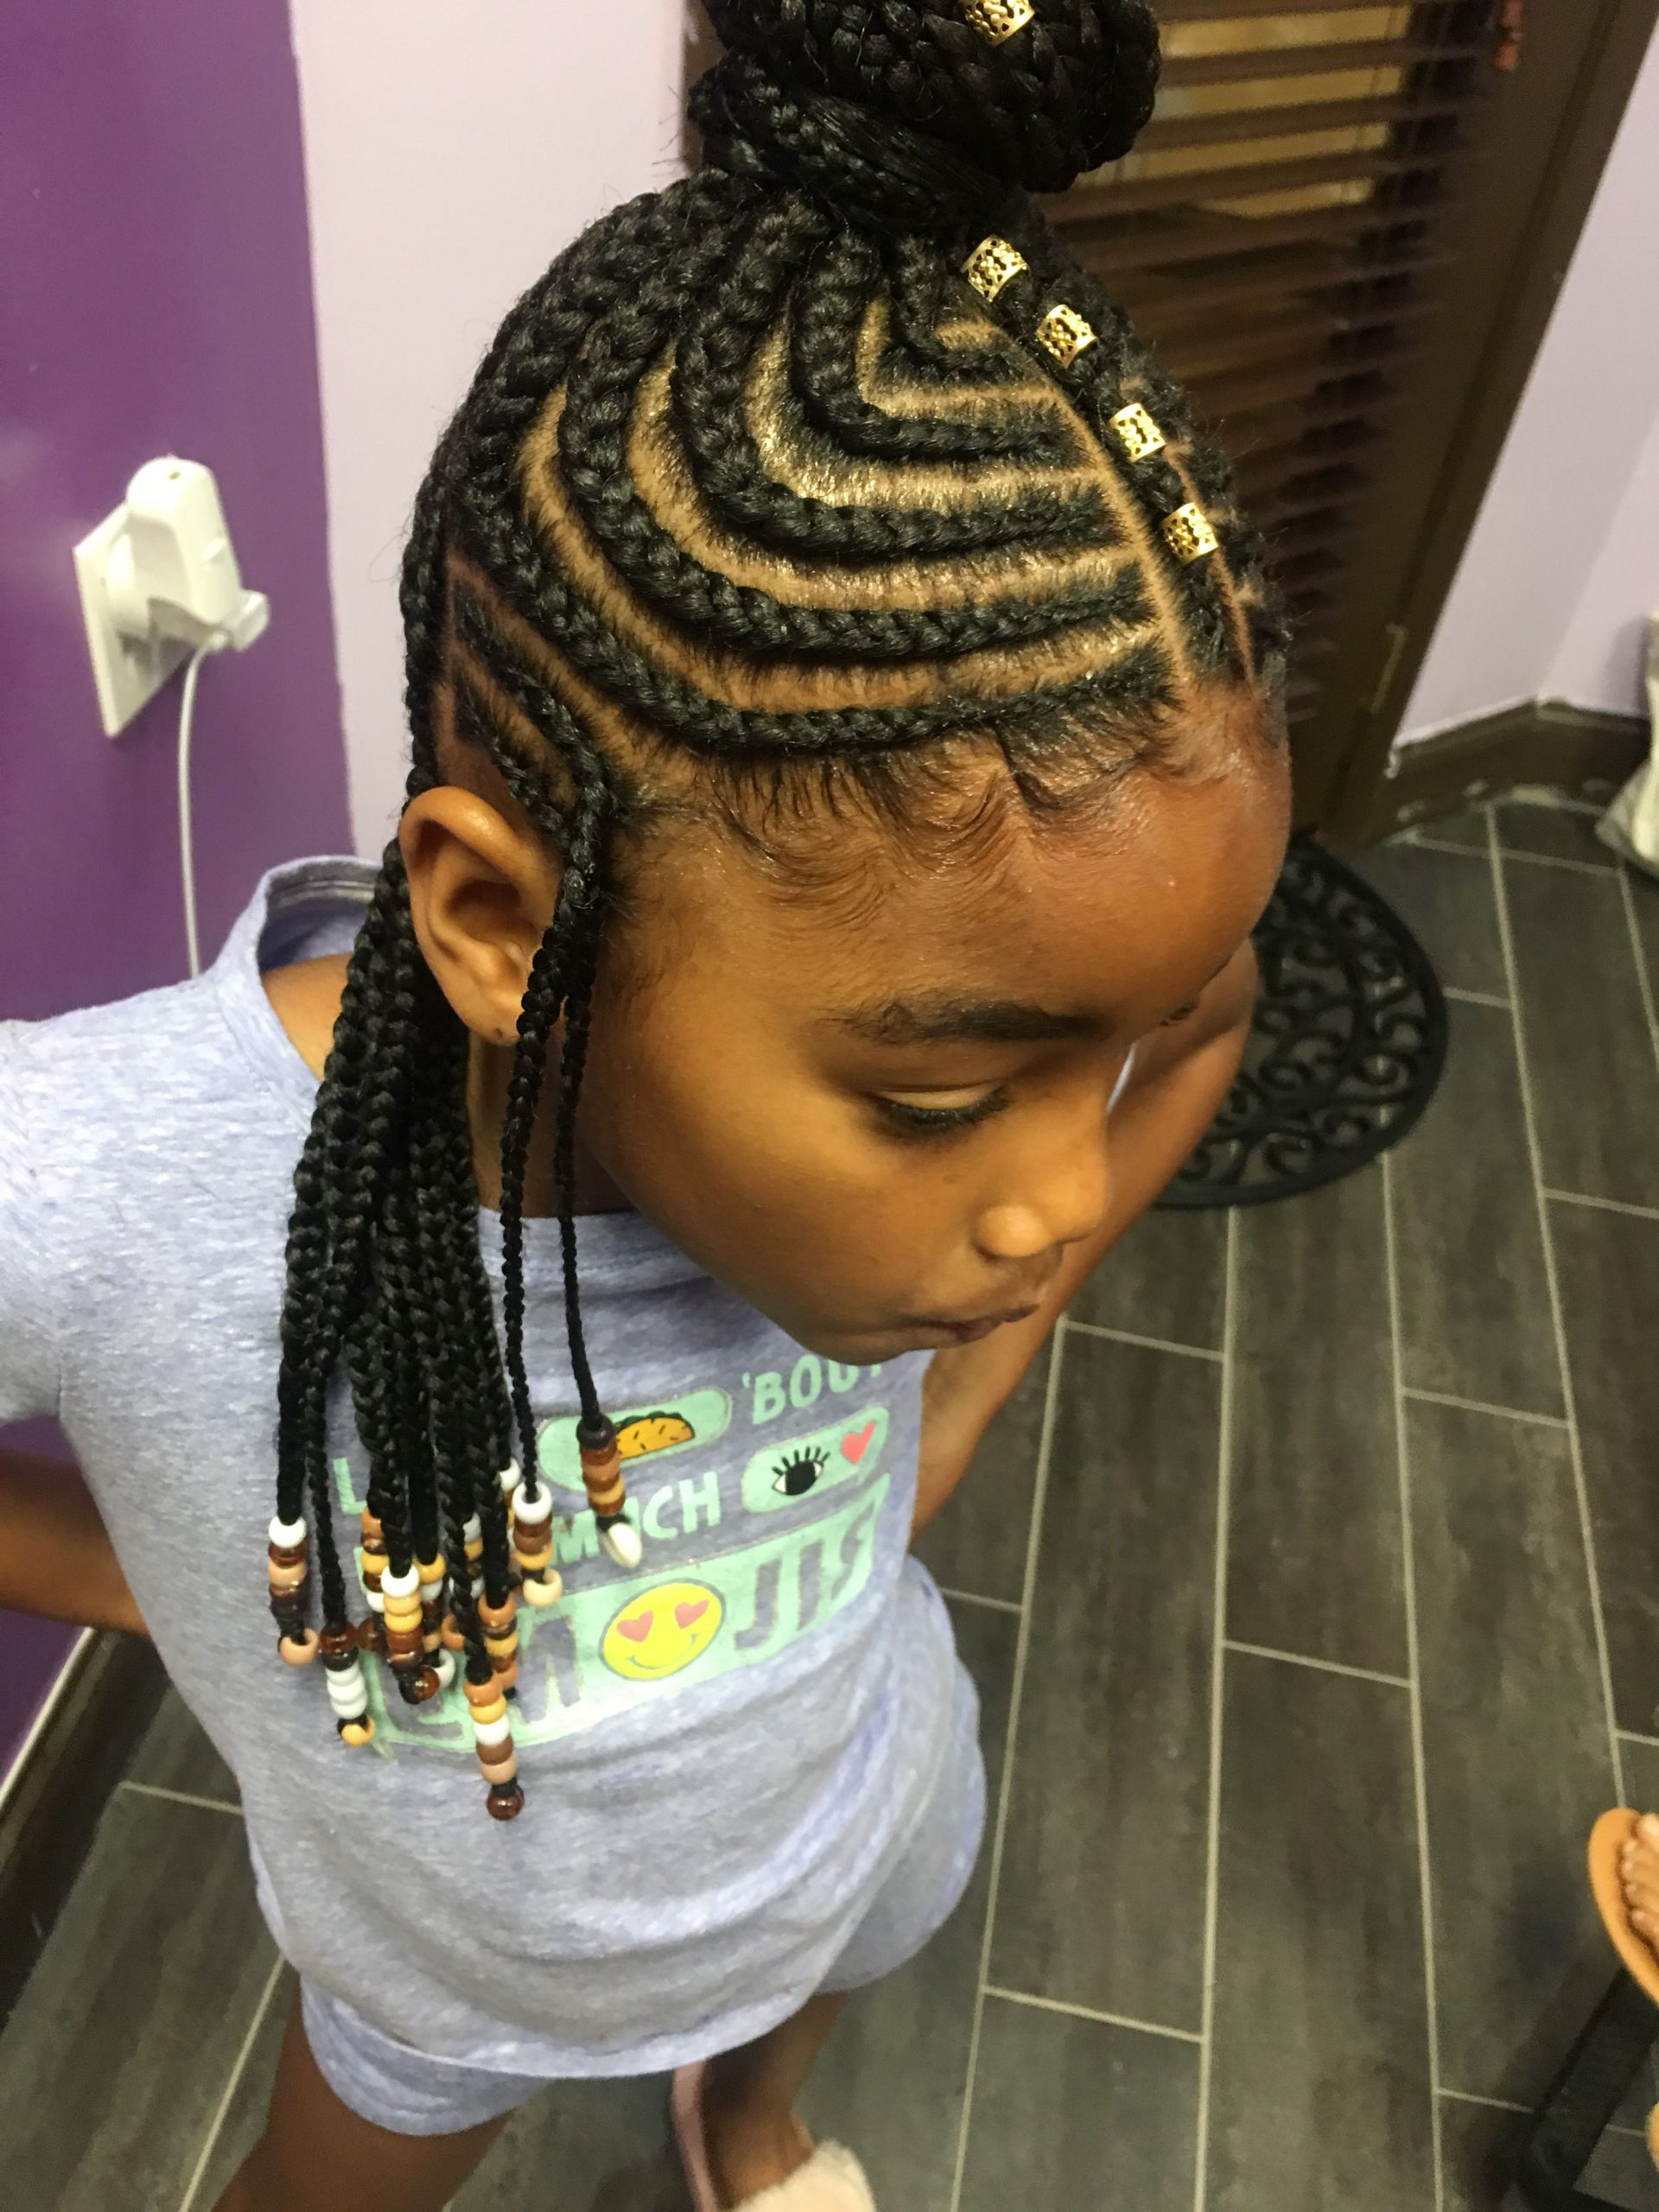 Cute hairstyles for kids hairstyleforblackwomen.net 89 scaled